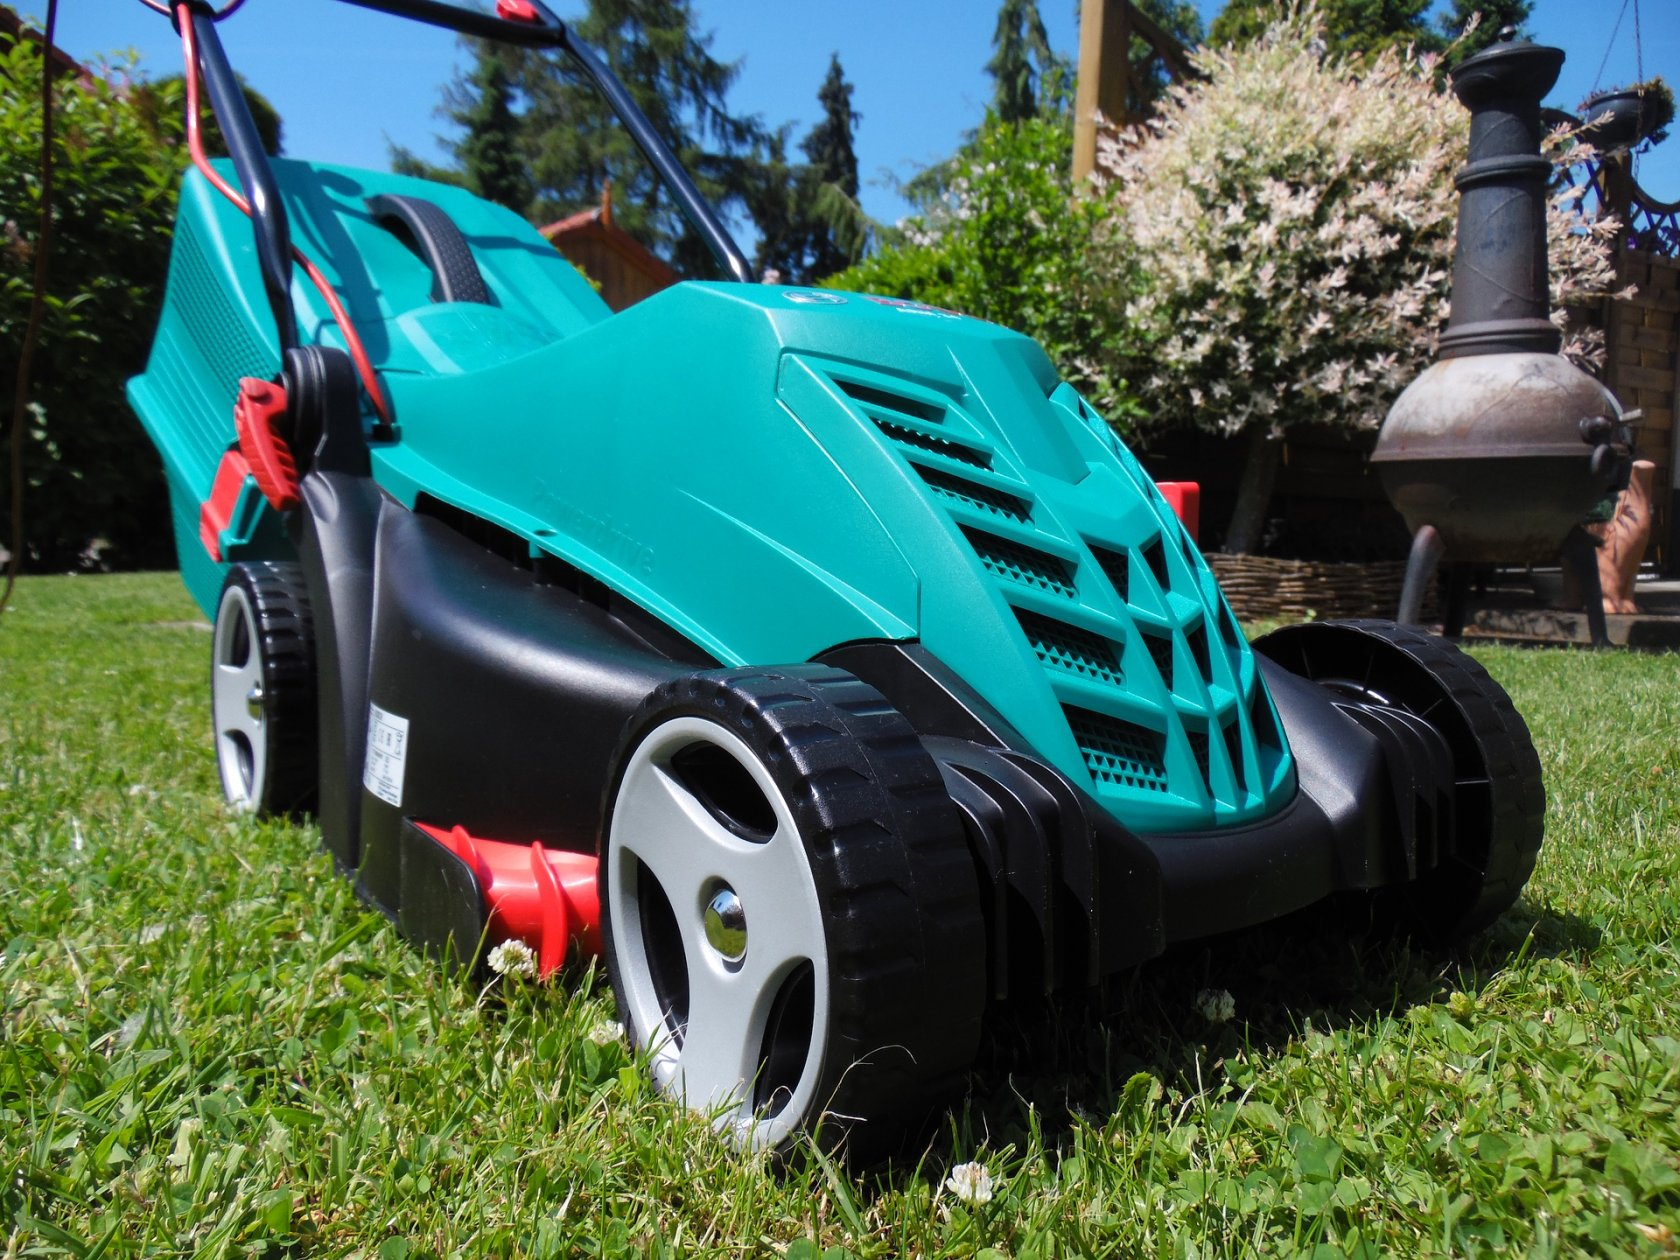 Factors to Consider When Choosing a Lawn Mower